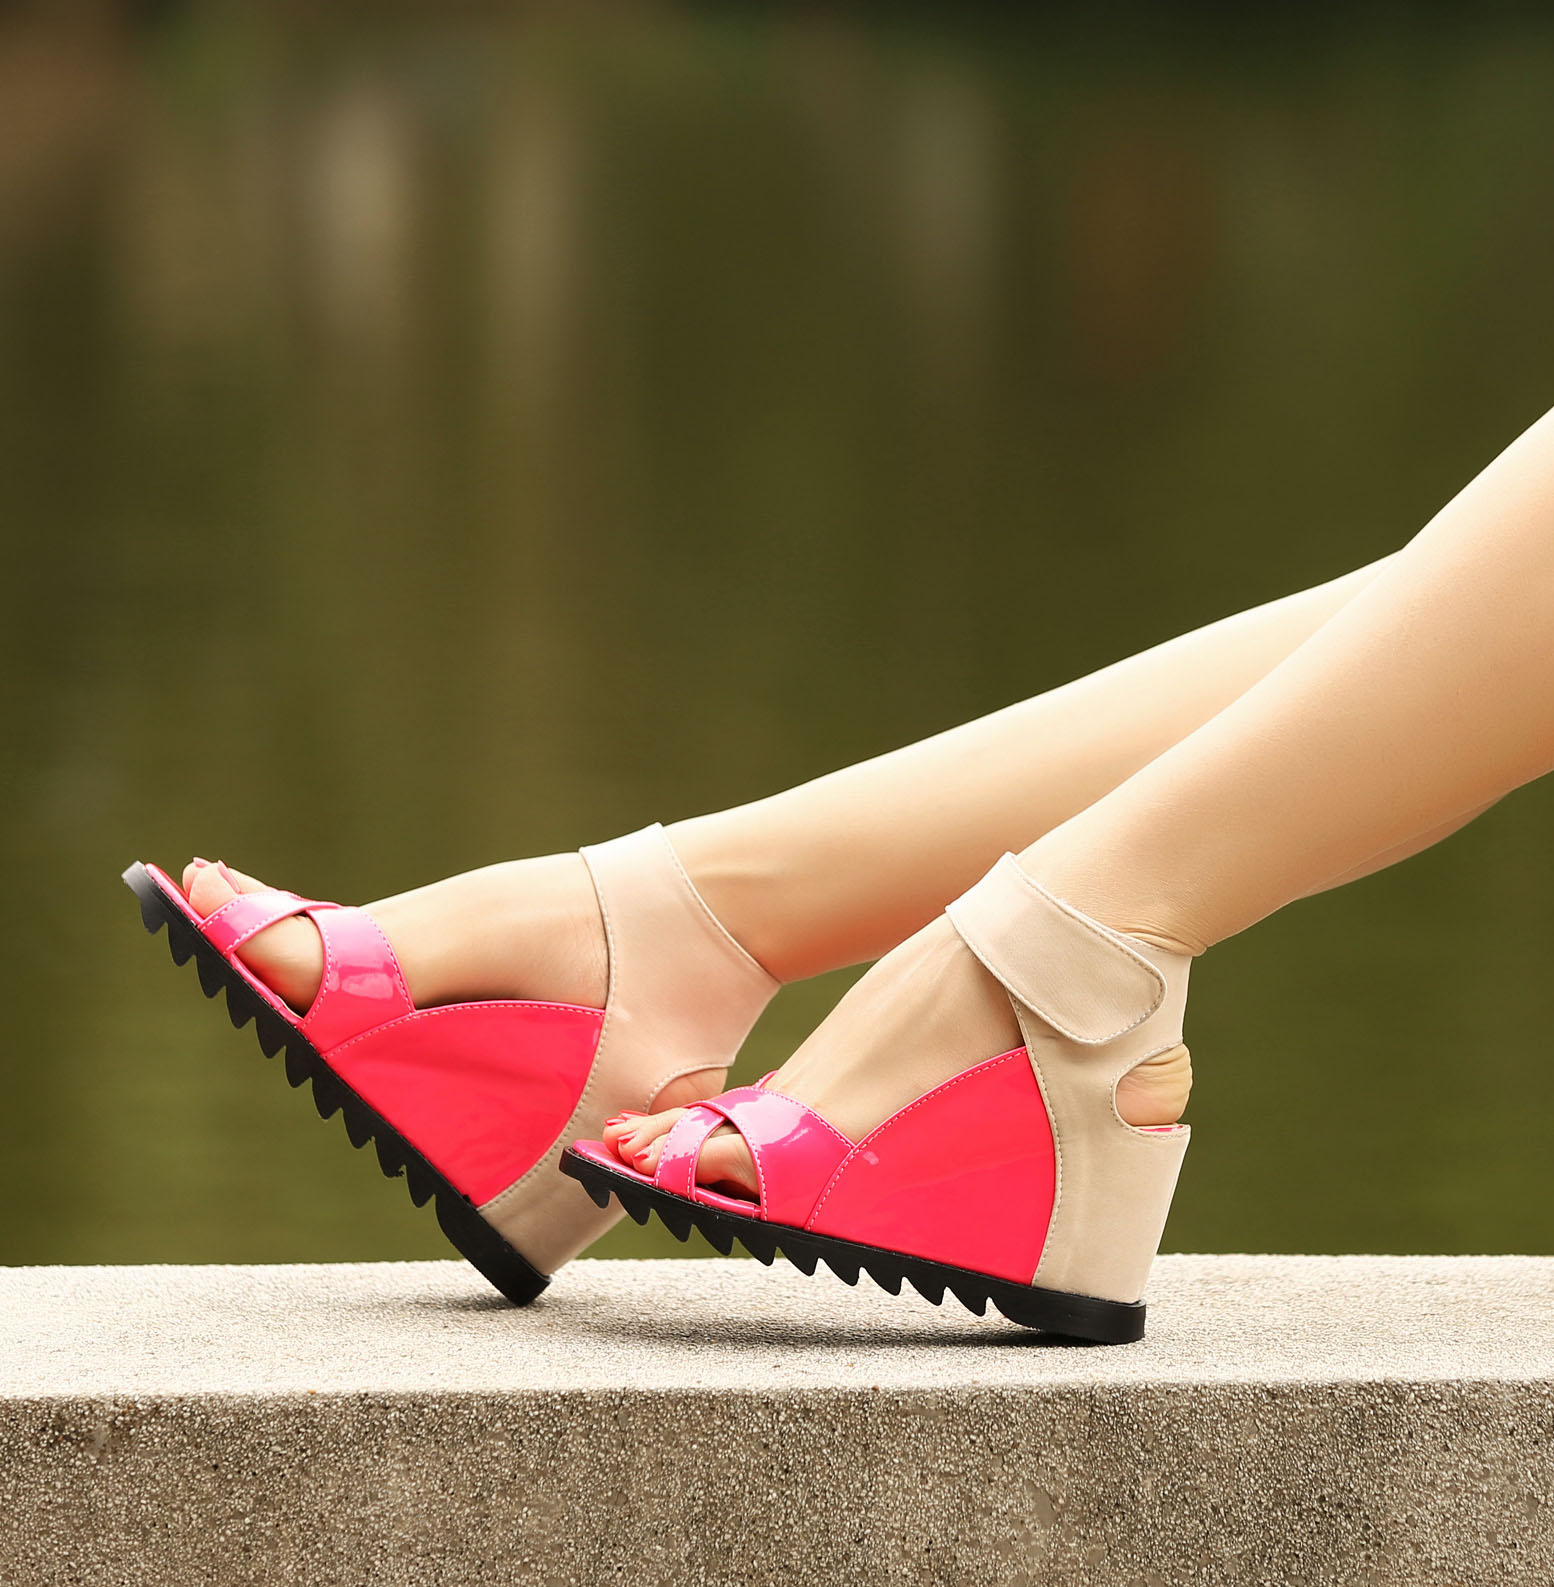 Women Fashion Shoes That Are Comfortable And Stylish ...